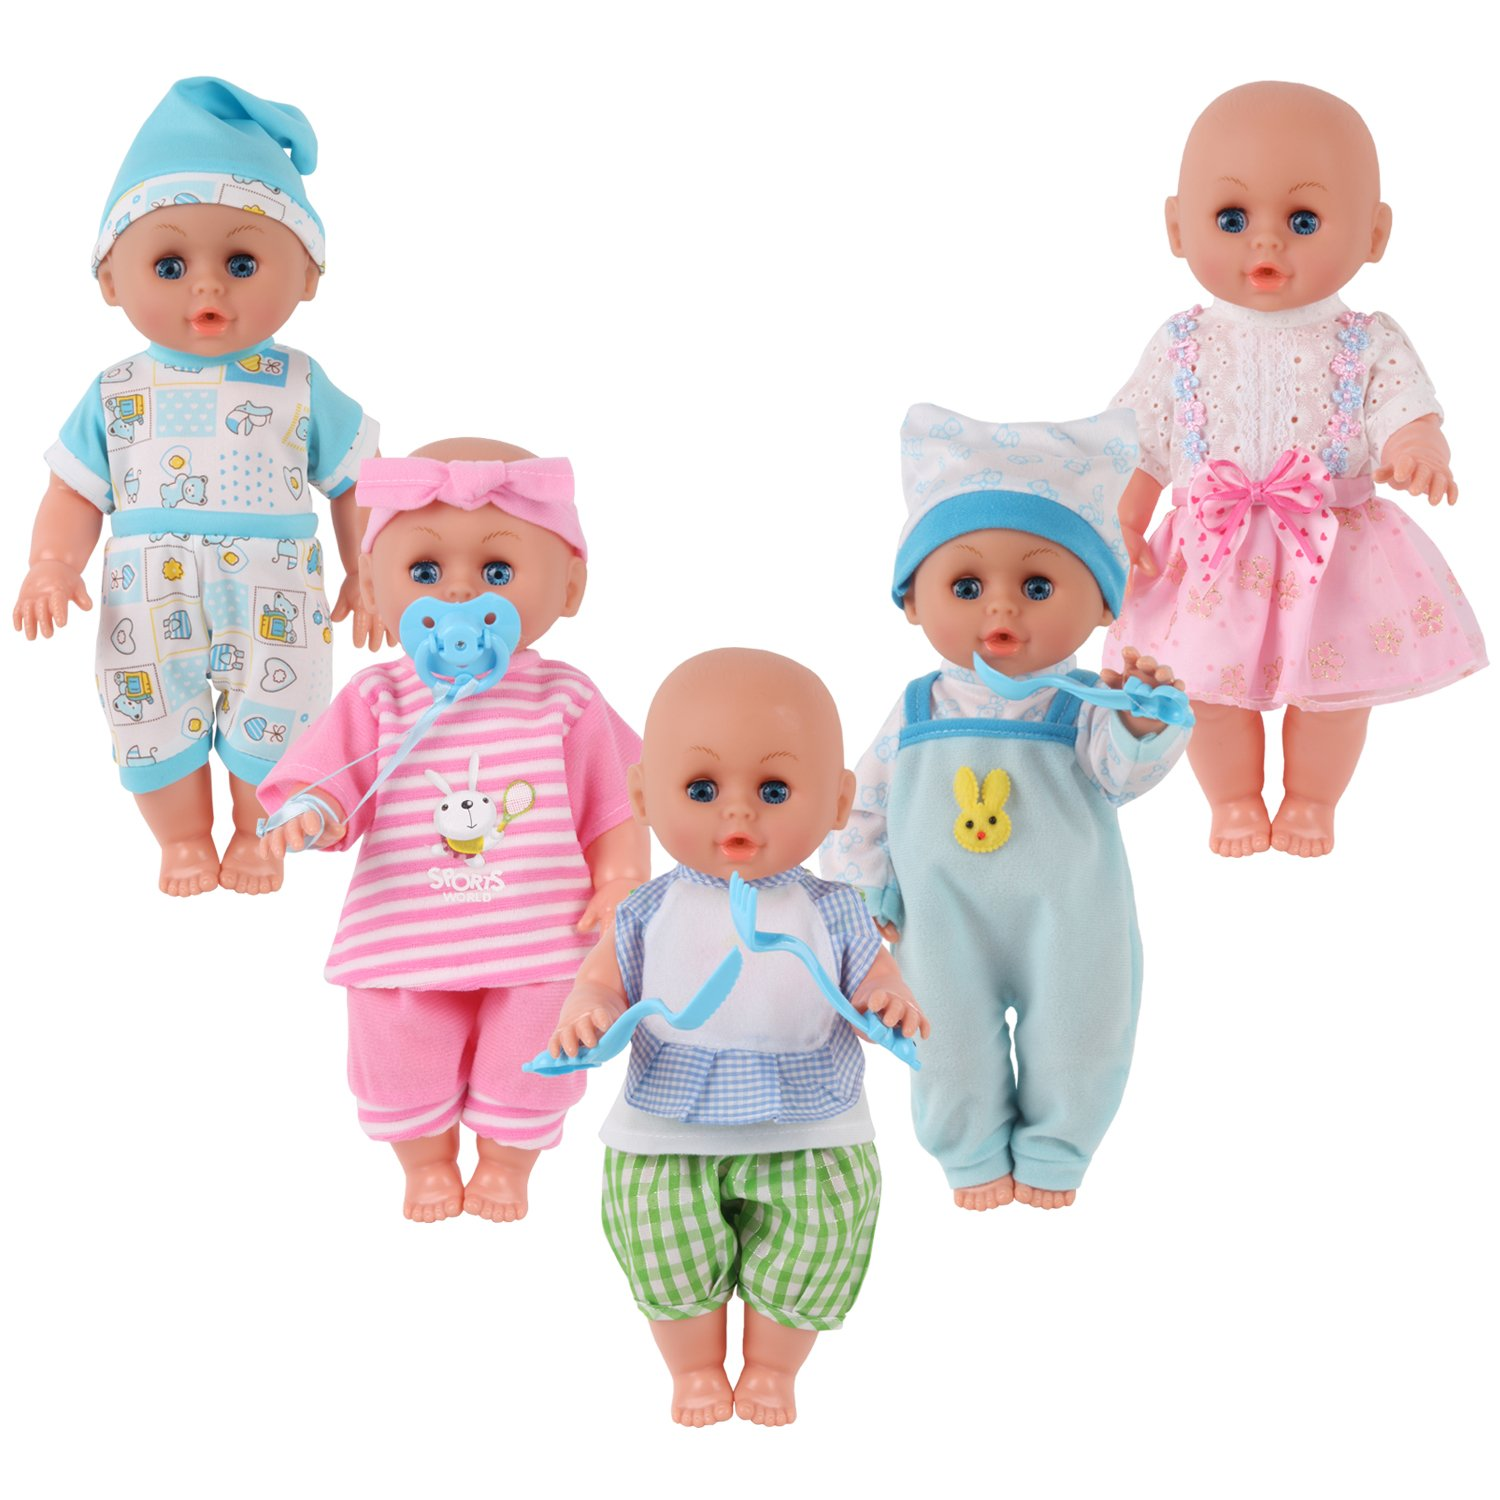 Set of 5 for 11-12-13 Inch Newborn Reborn Alive Doll Baby Doll Clothes Costumes Gown Outfits with Feeding Bottle Birthday Xmas Present Wrap China